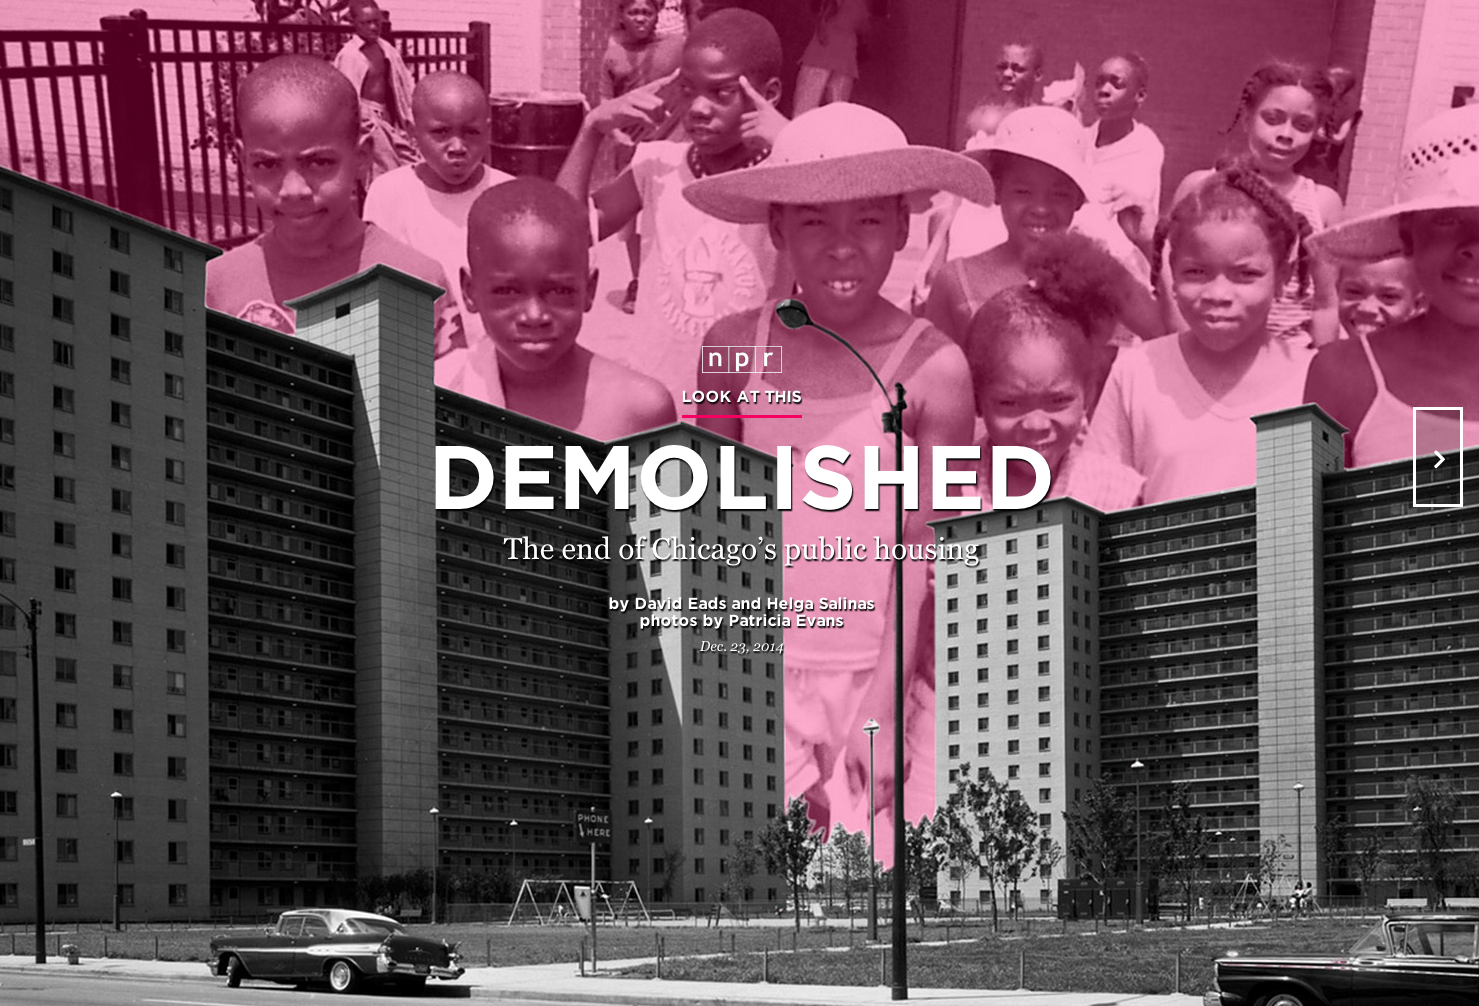 Demolished: The End of Chicago's Public Housing, Courtesy of NPR